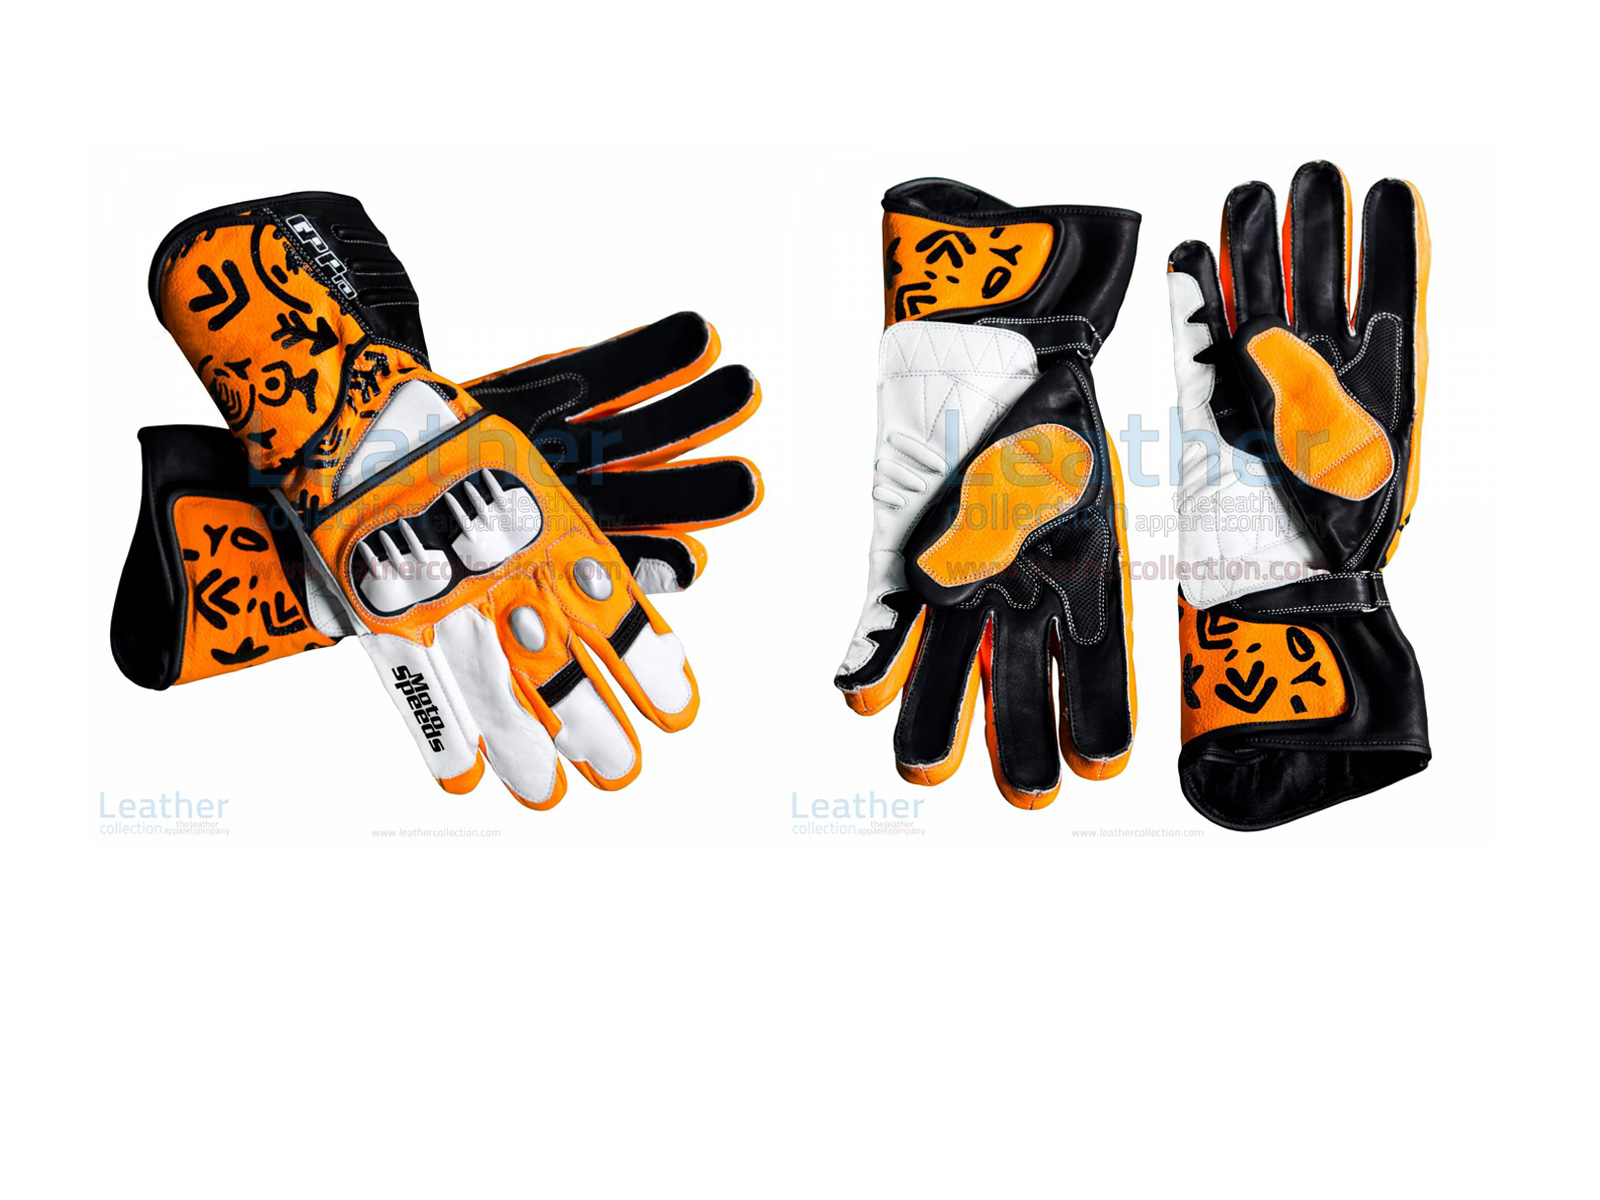 CASEY STONER 2012 MOTOGP RACE GLOVES